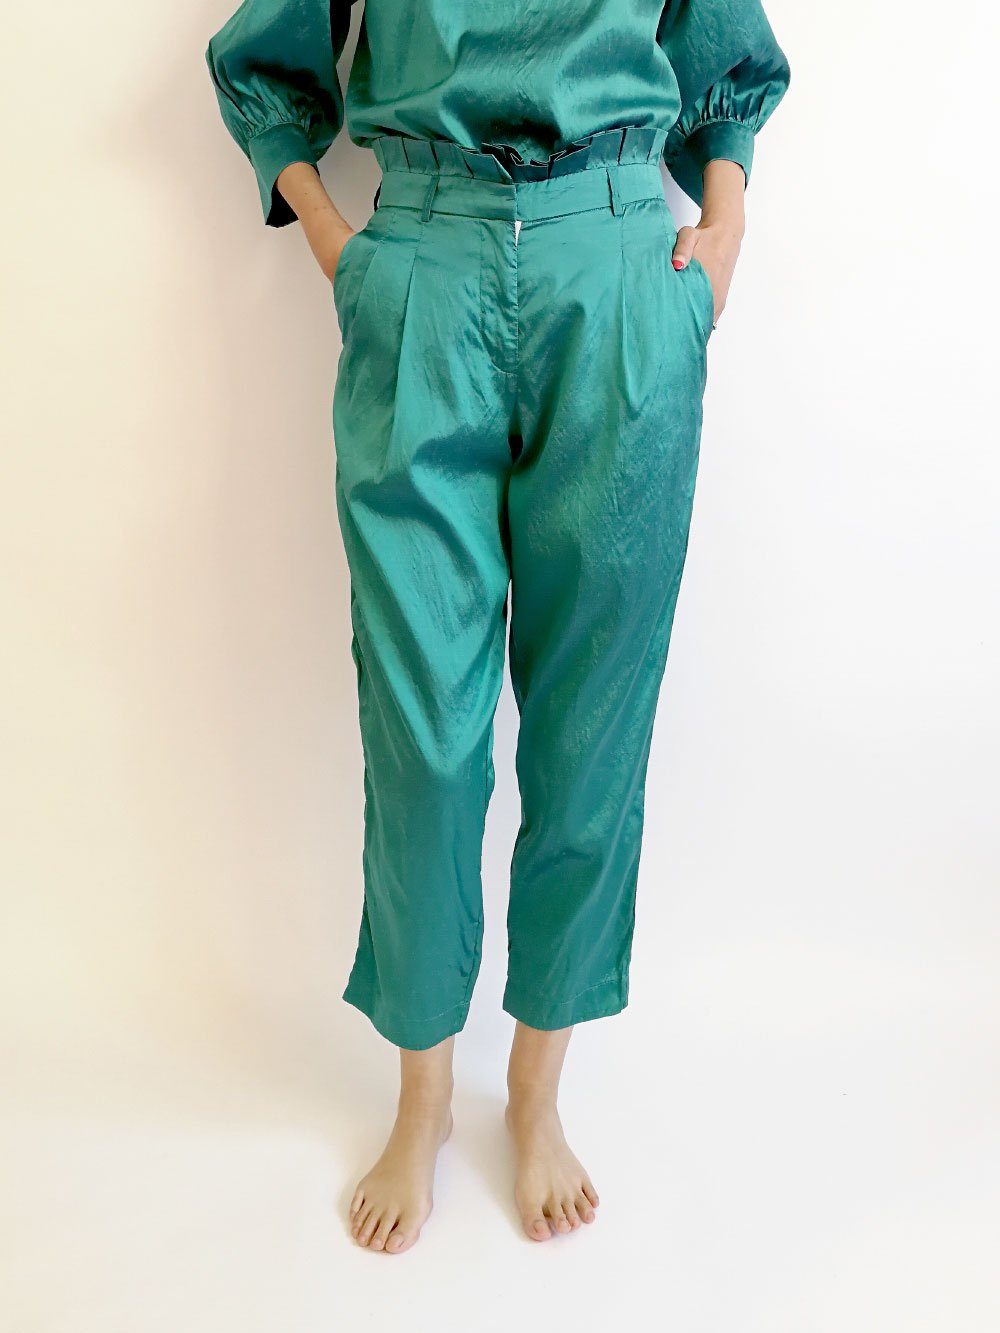 Tucked Pants / original blue